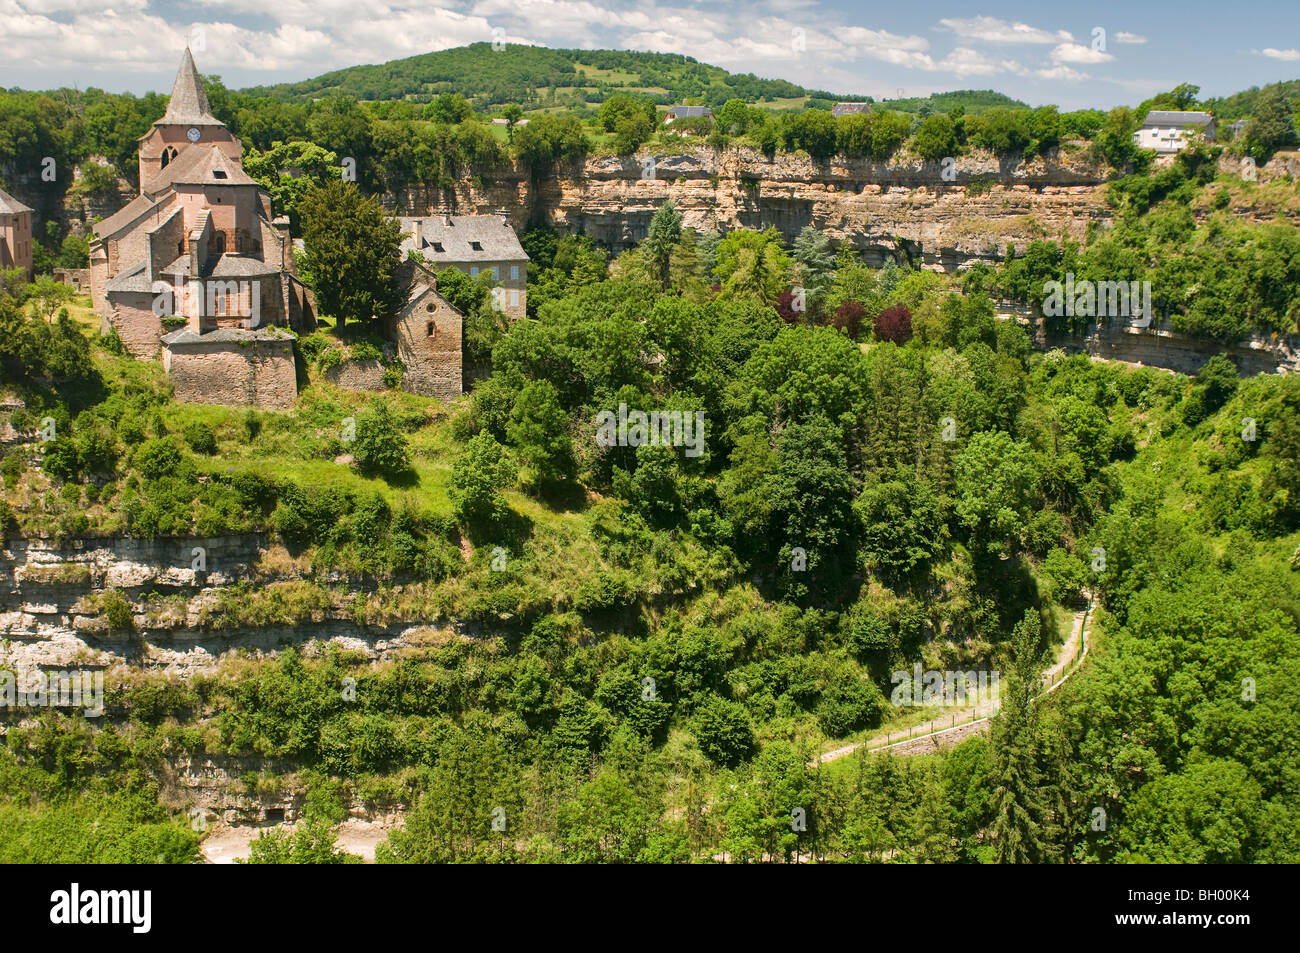 Sainte Fauste church,  looking over the Dourdou meander at Bozouls,  Aveyron, France - Stock Image